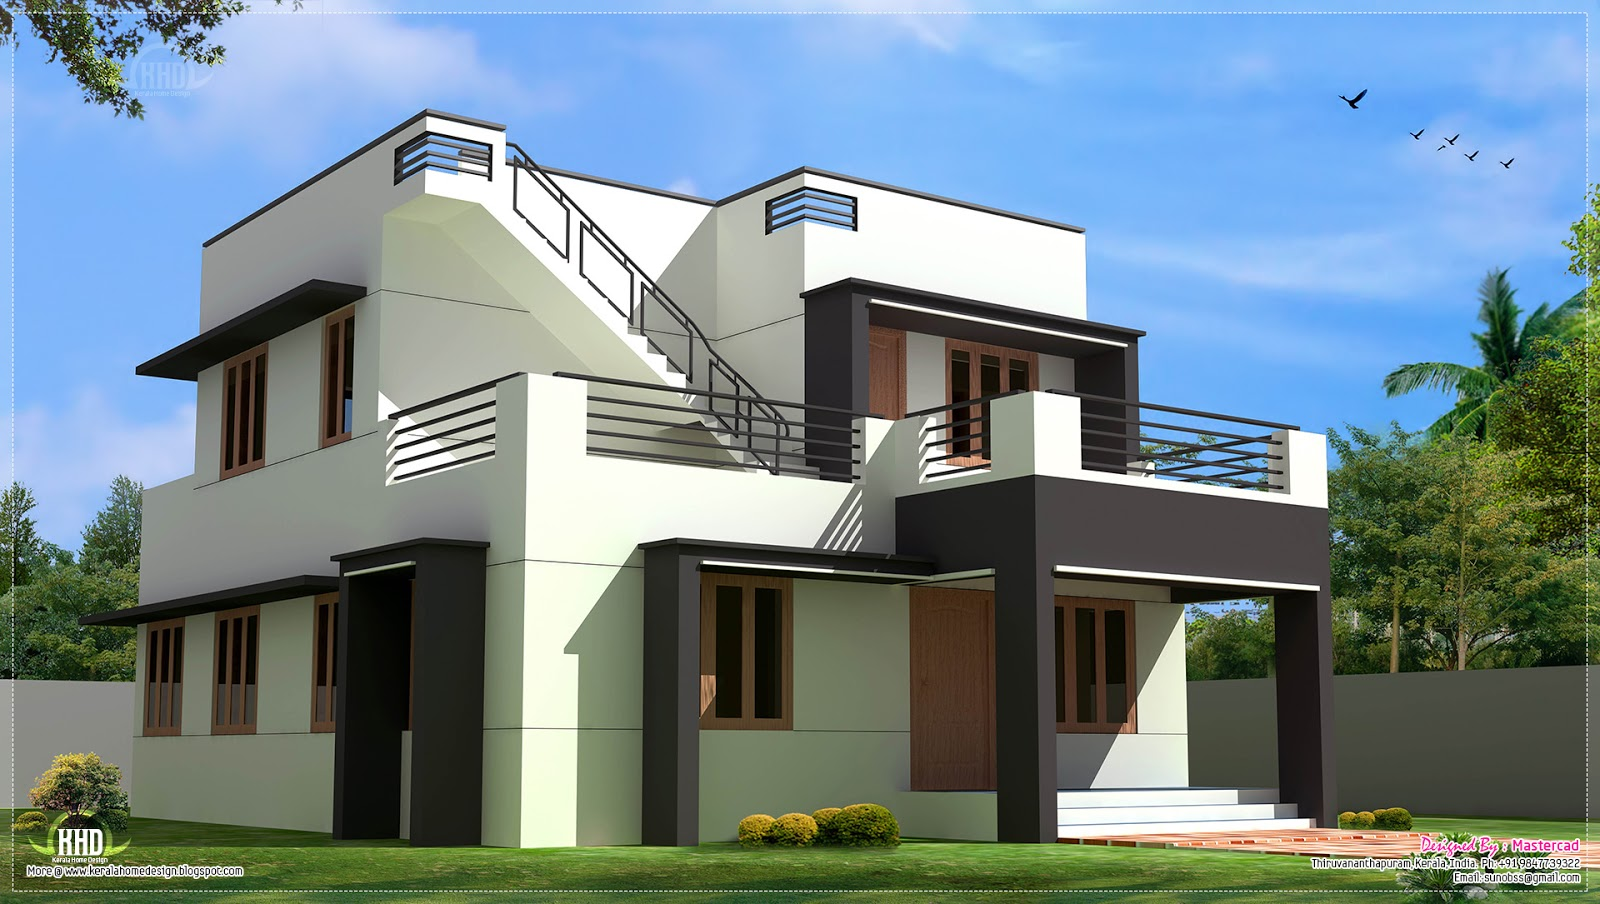 Design Home Modern House Plans on Modern House Design